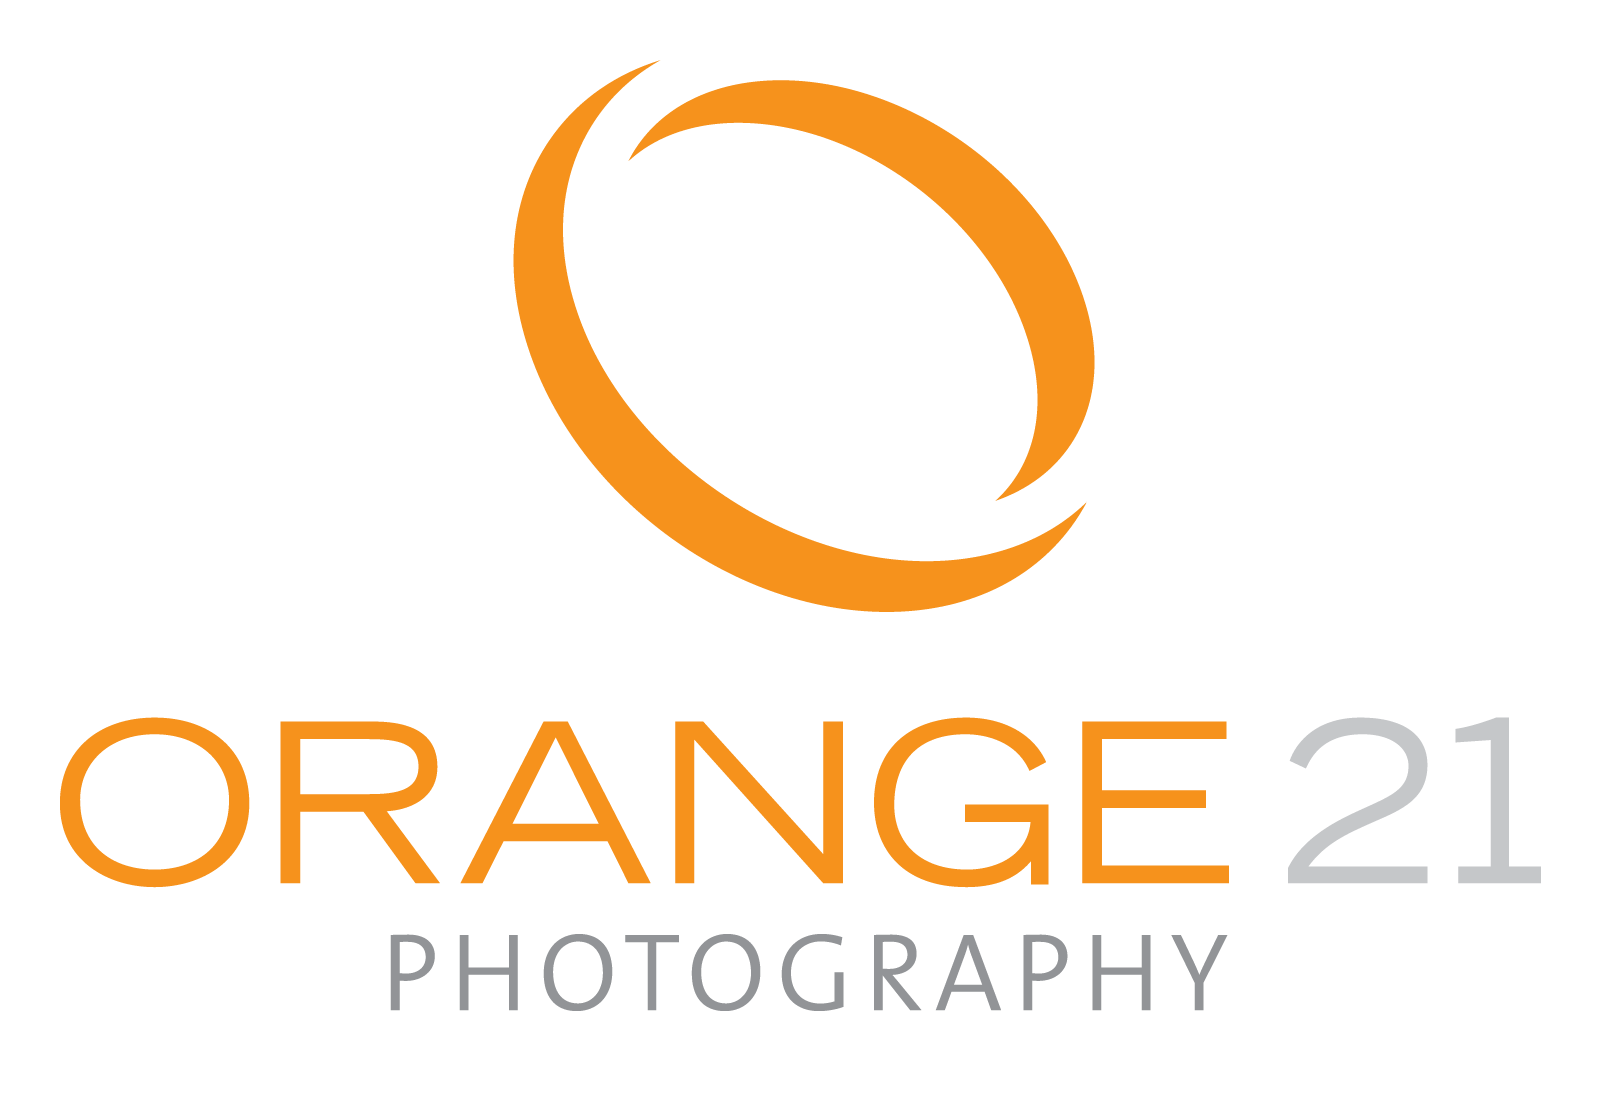 Vancouver Wedding Photographer - Orange 21 Photography | Orange 21 Photo